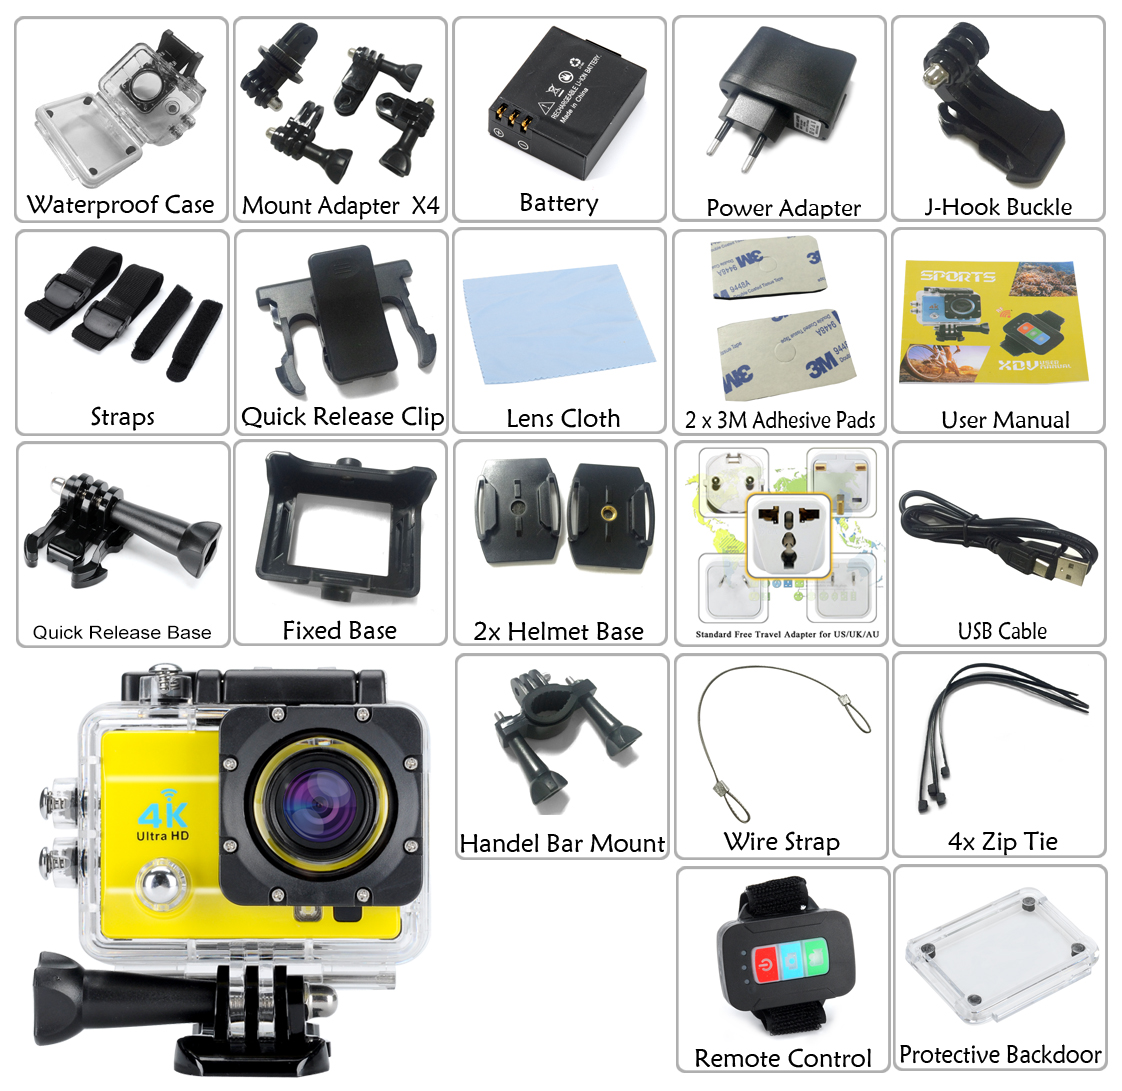 images/electronics-2017/Q3H-Waterproof-4K-Sports-Camera-Wi-Fi-16MP-170-Degree-Wide-Angle-4X-Digital-Zoom-2-Inch-LCS-Screen-Yellow-plusbuyer_9.jpg